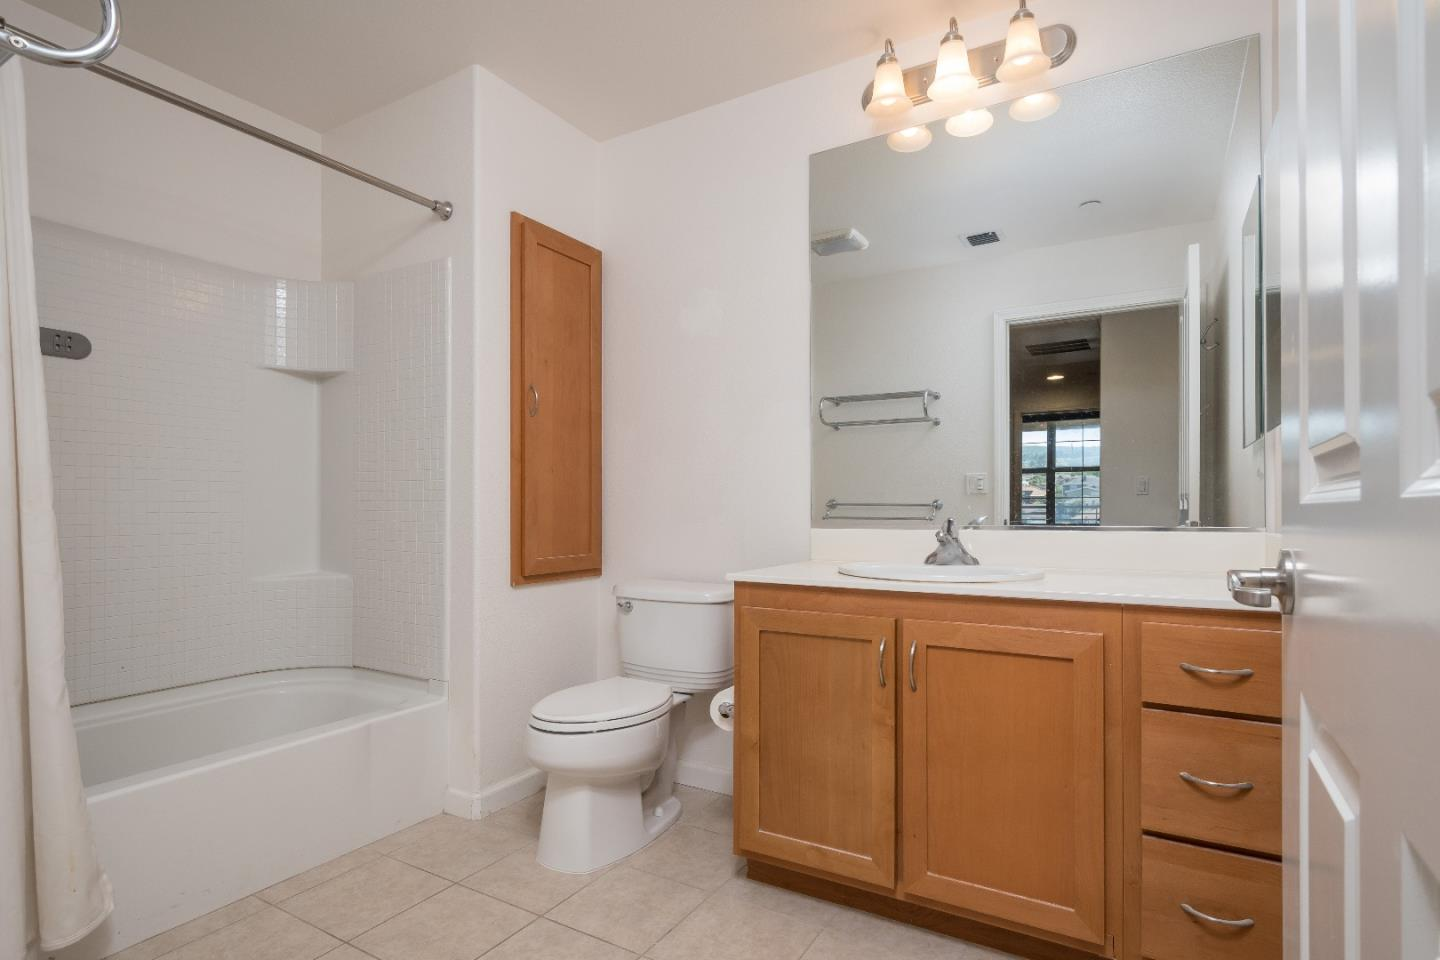 Additional photo for property listing at 1388 Broadway 302  MILLBRAE, CALIFORNIA 94030